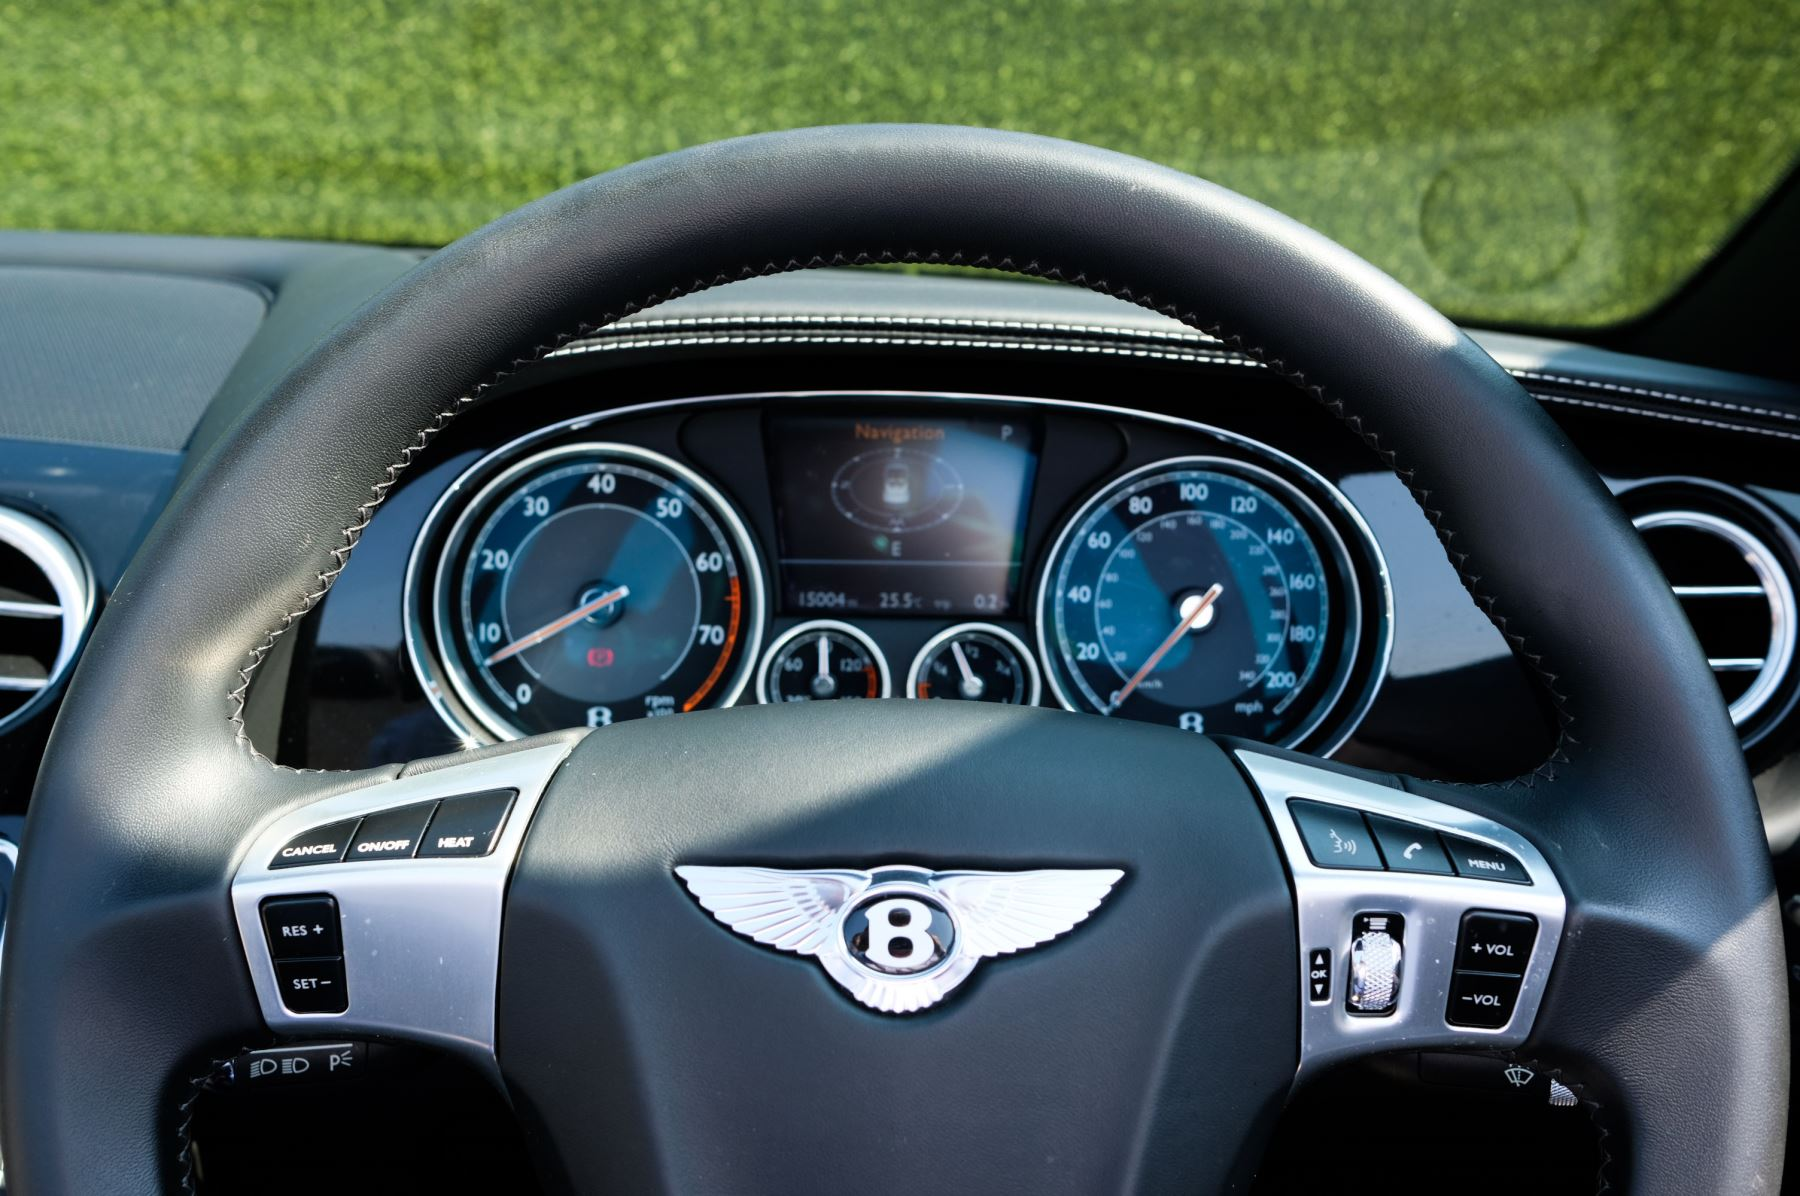 Bentley Continental GTC 4.0 V8 S - Mulliner Driving Specification image 13